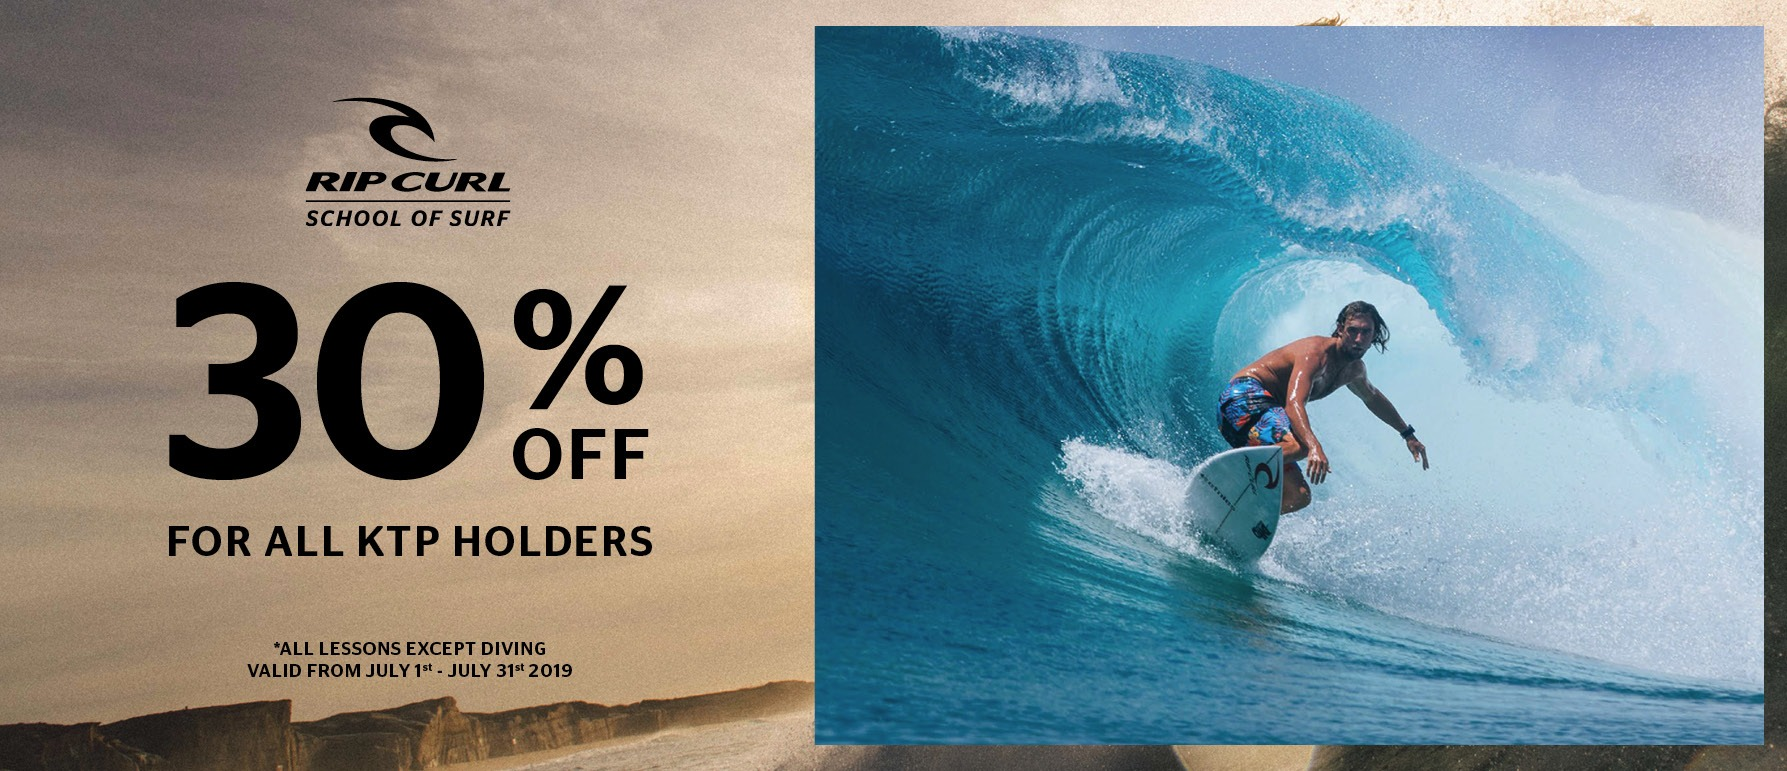 85cc393cb7 COURSES & RESERVATION - Rip Curl School of Surf